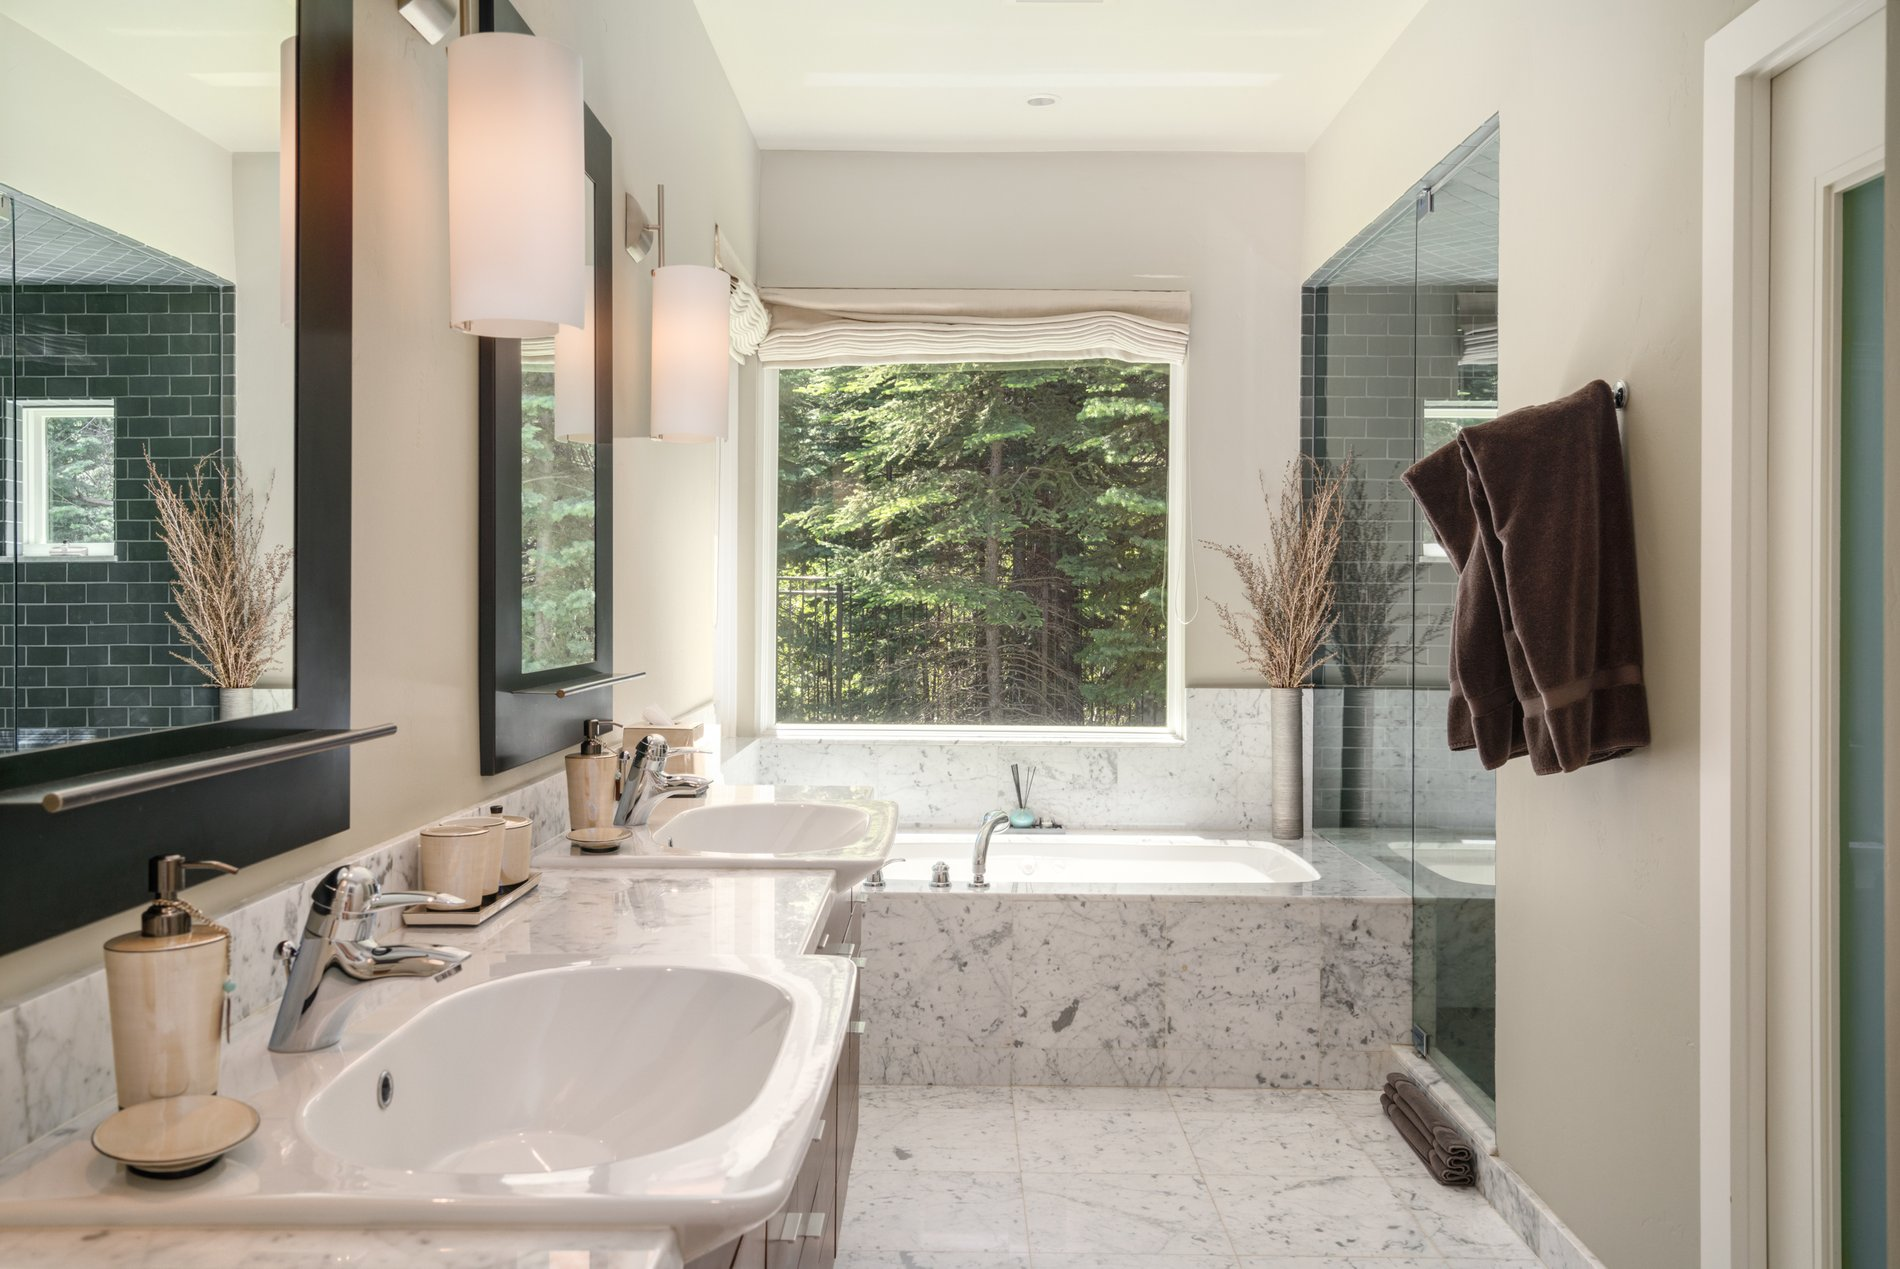 A more traditionally styled bathroom with marble, tile, double sinks, wood cabinetry and a walk in shower.